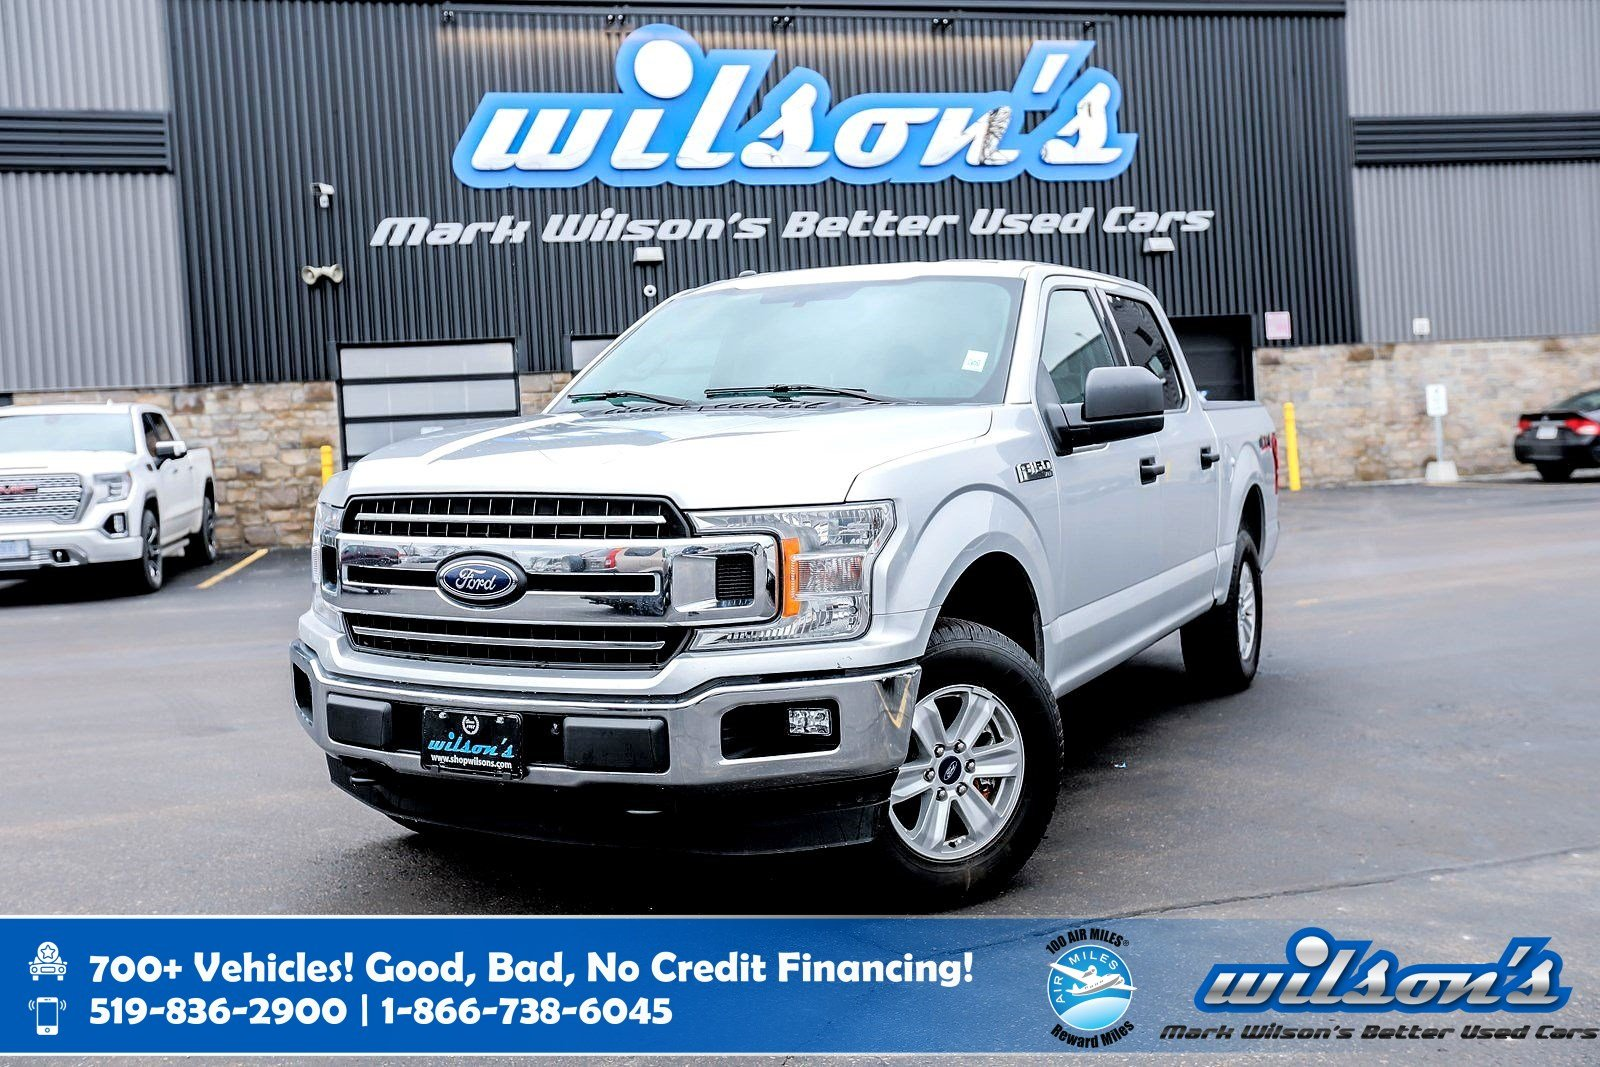 Certified Pre-Owned 2018 Ford F-150 XLT V8 5.0L, 4WD Crew Cab, Trailer Hitch, Boxliner, New Tires, Rear Cam, Bluetooth, One Owner!